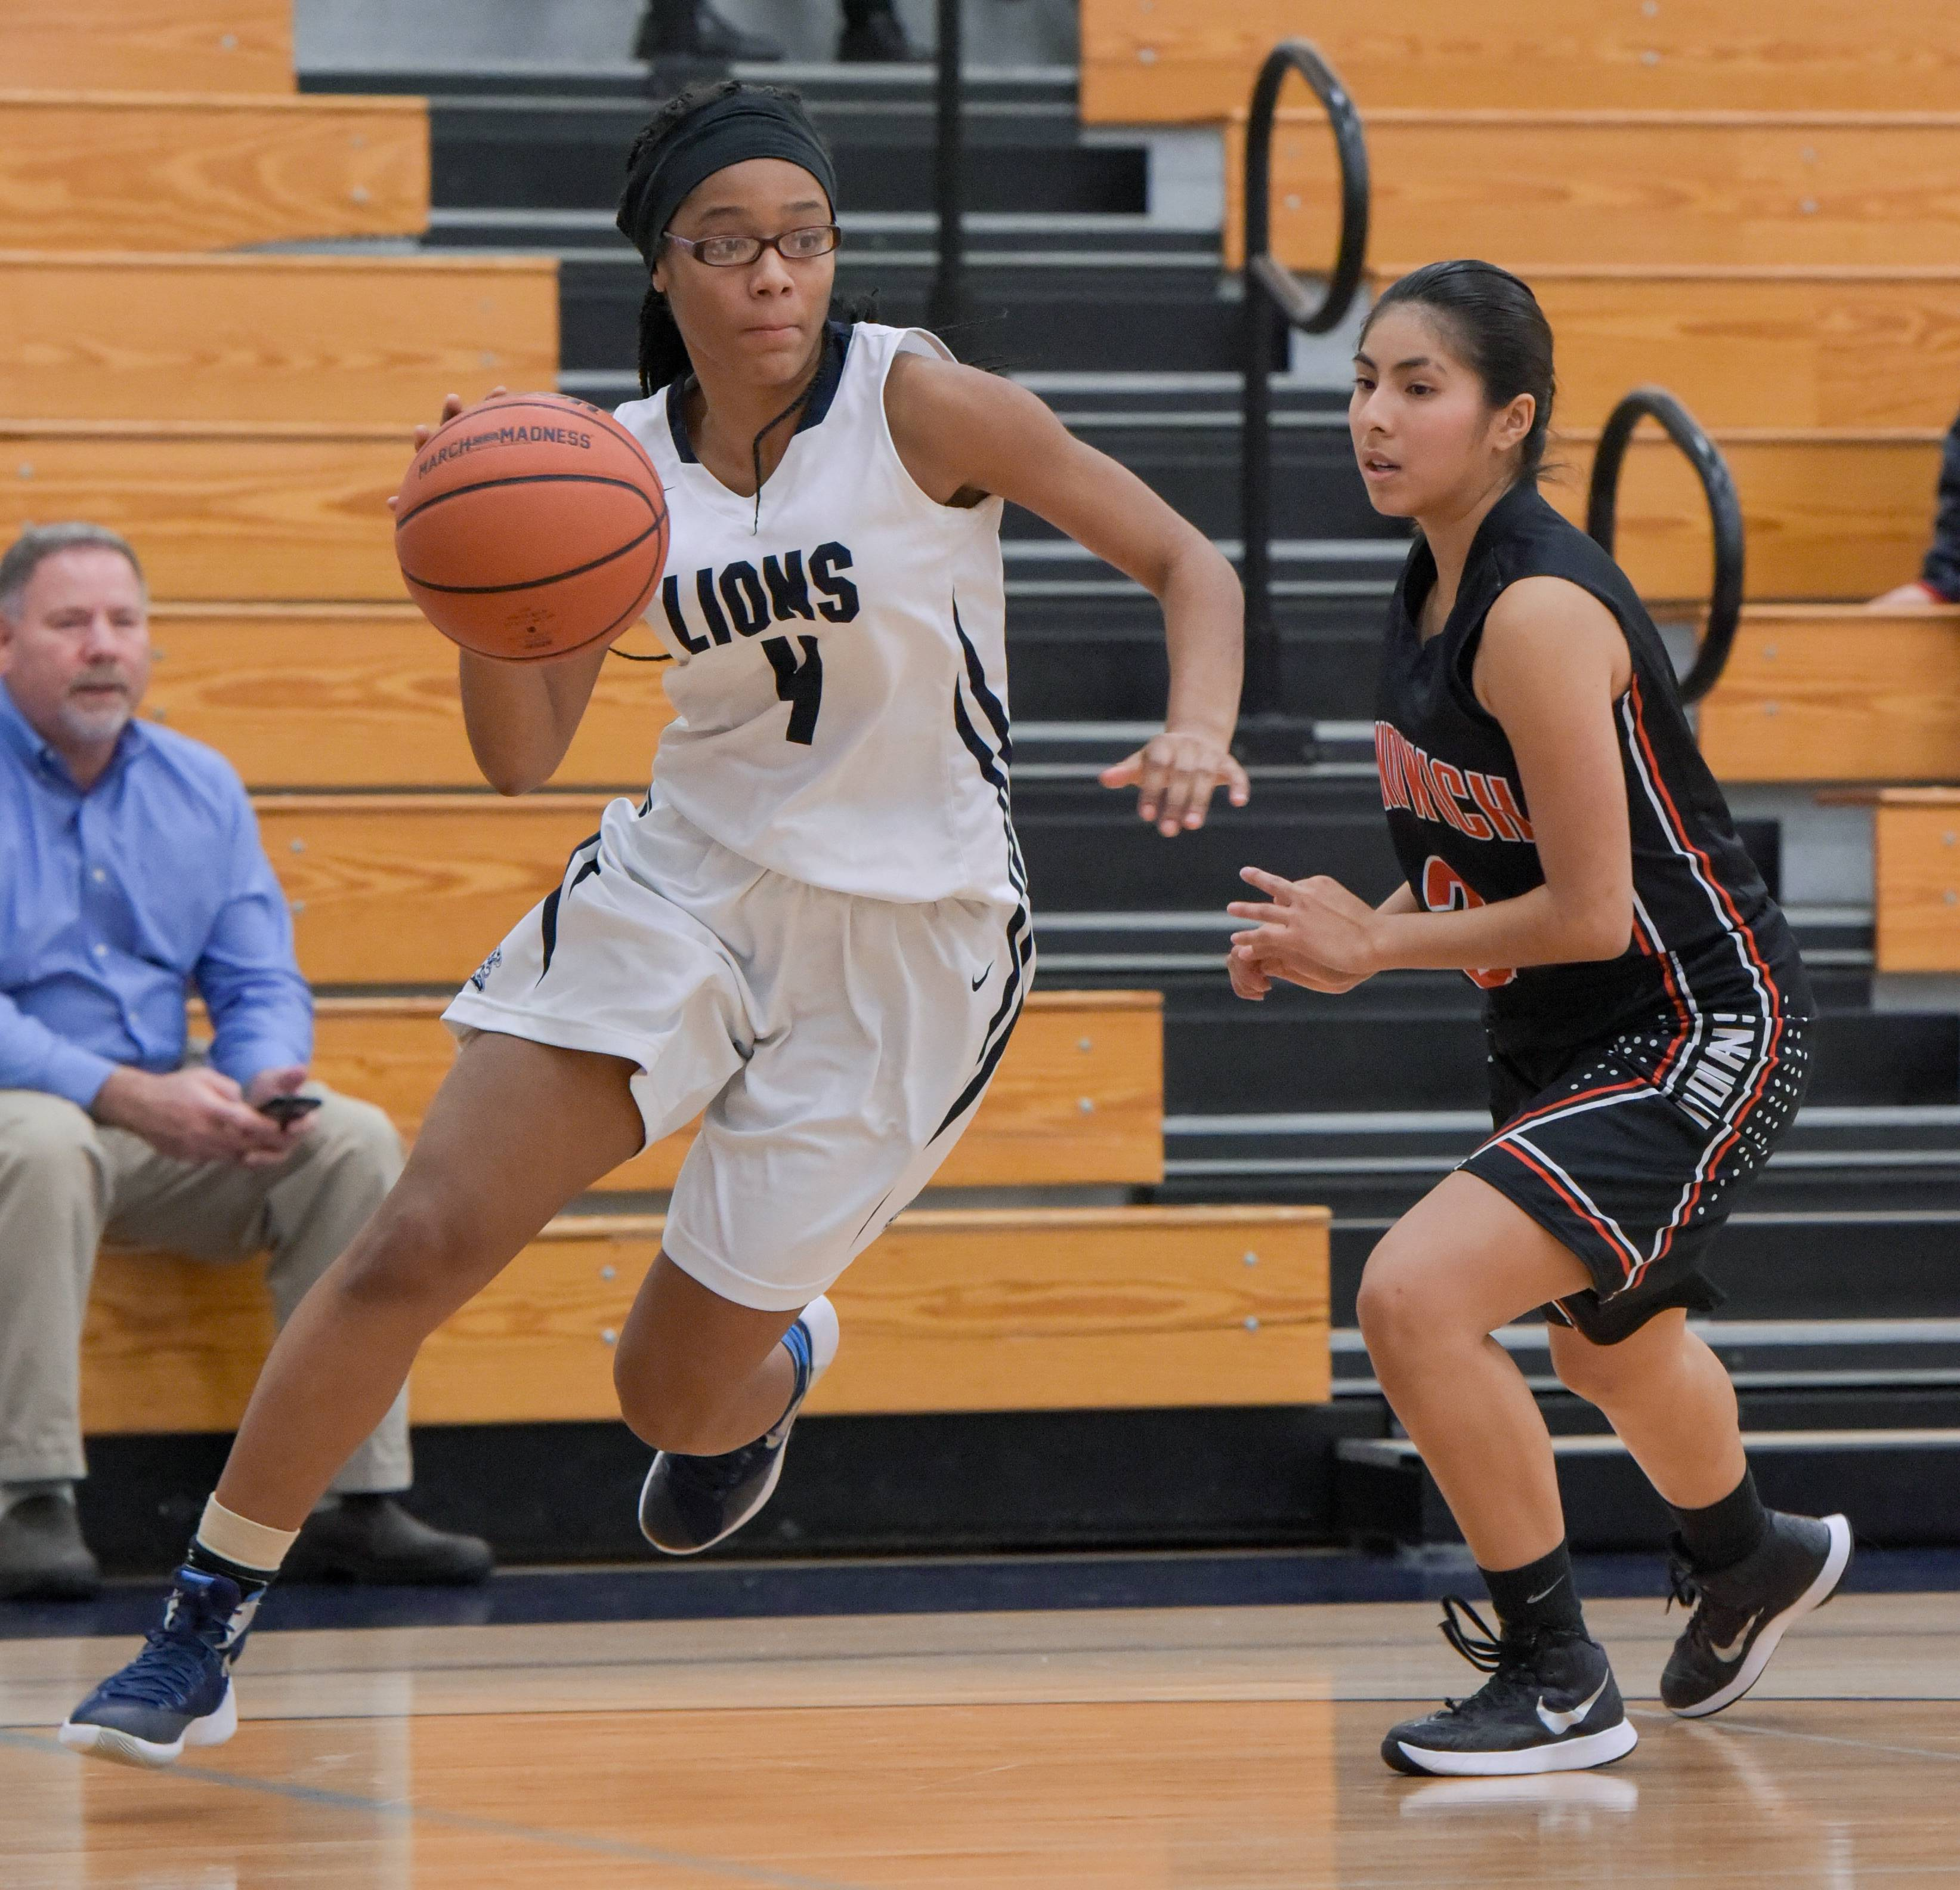 Lisle's Paige Kellie (4) drives around Sandwich's Ezbeydy Rivera (3) during girls varsity basketball on Dec. 11, 2017 in Lisle.